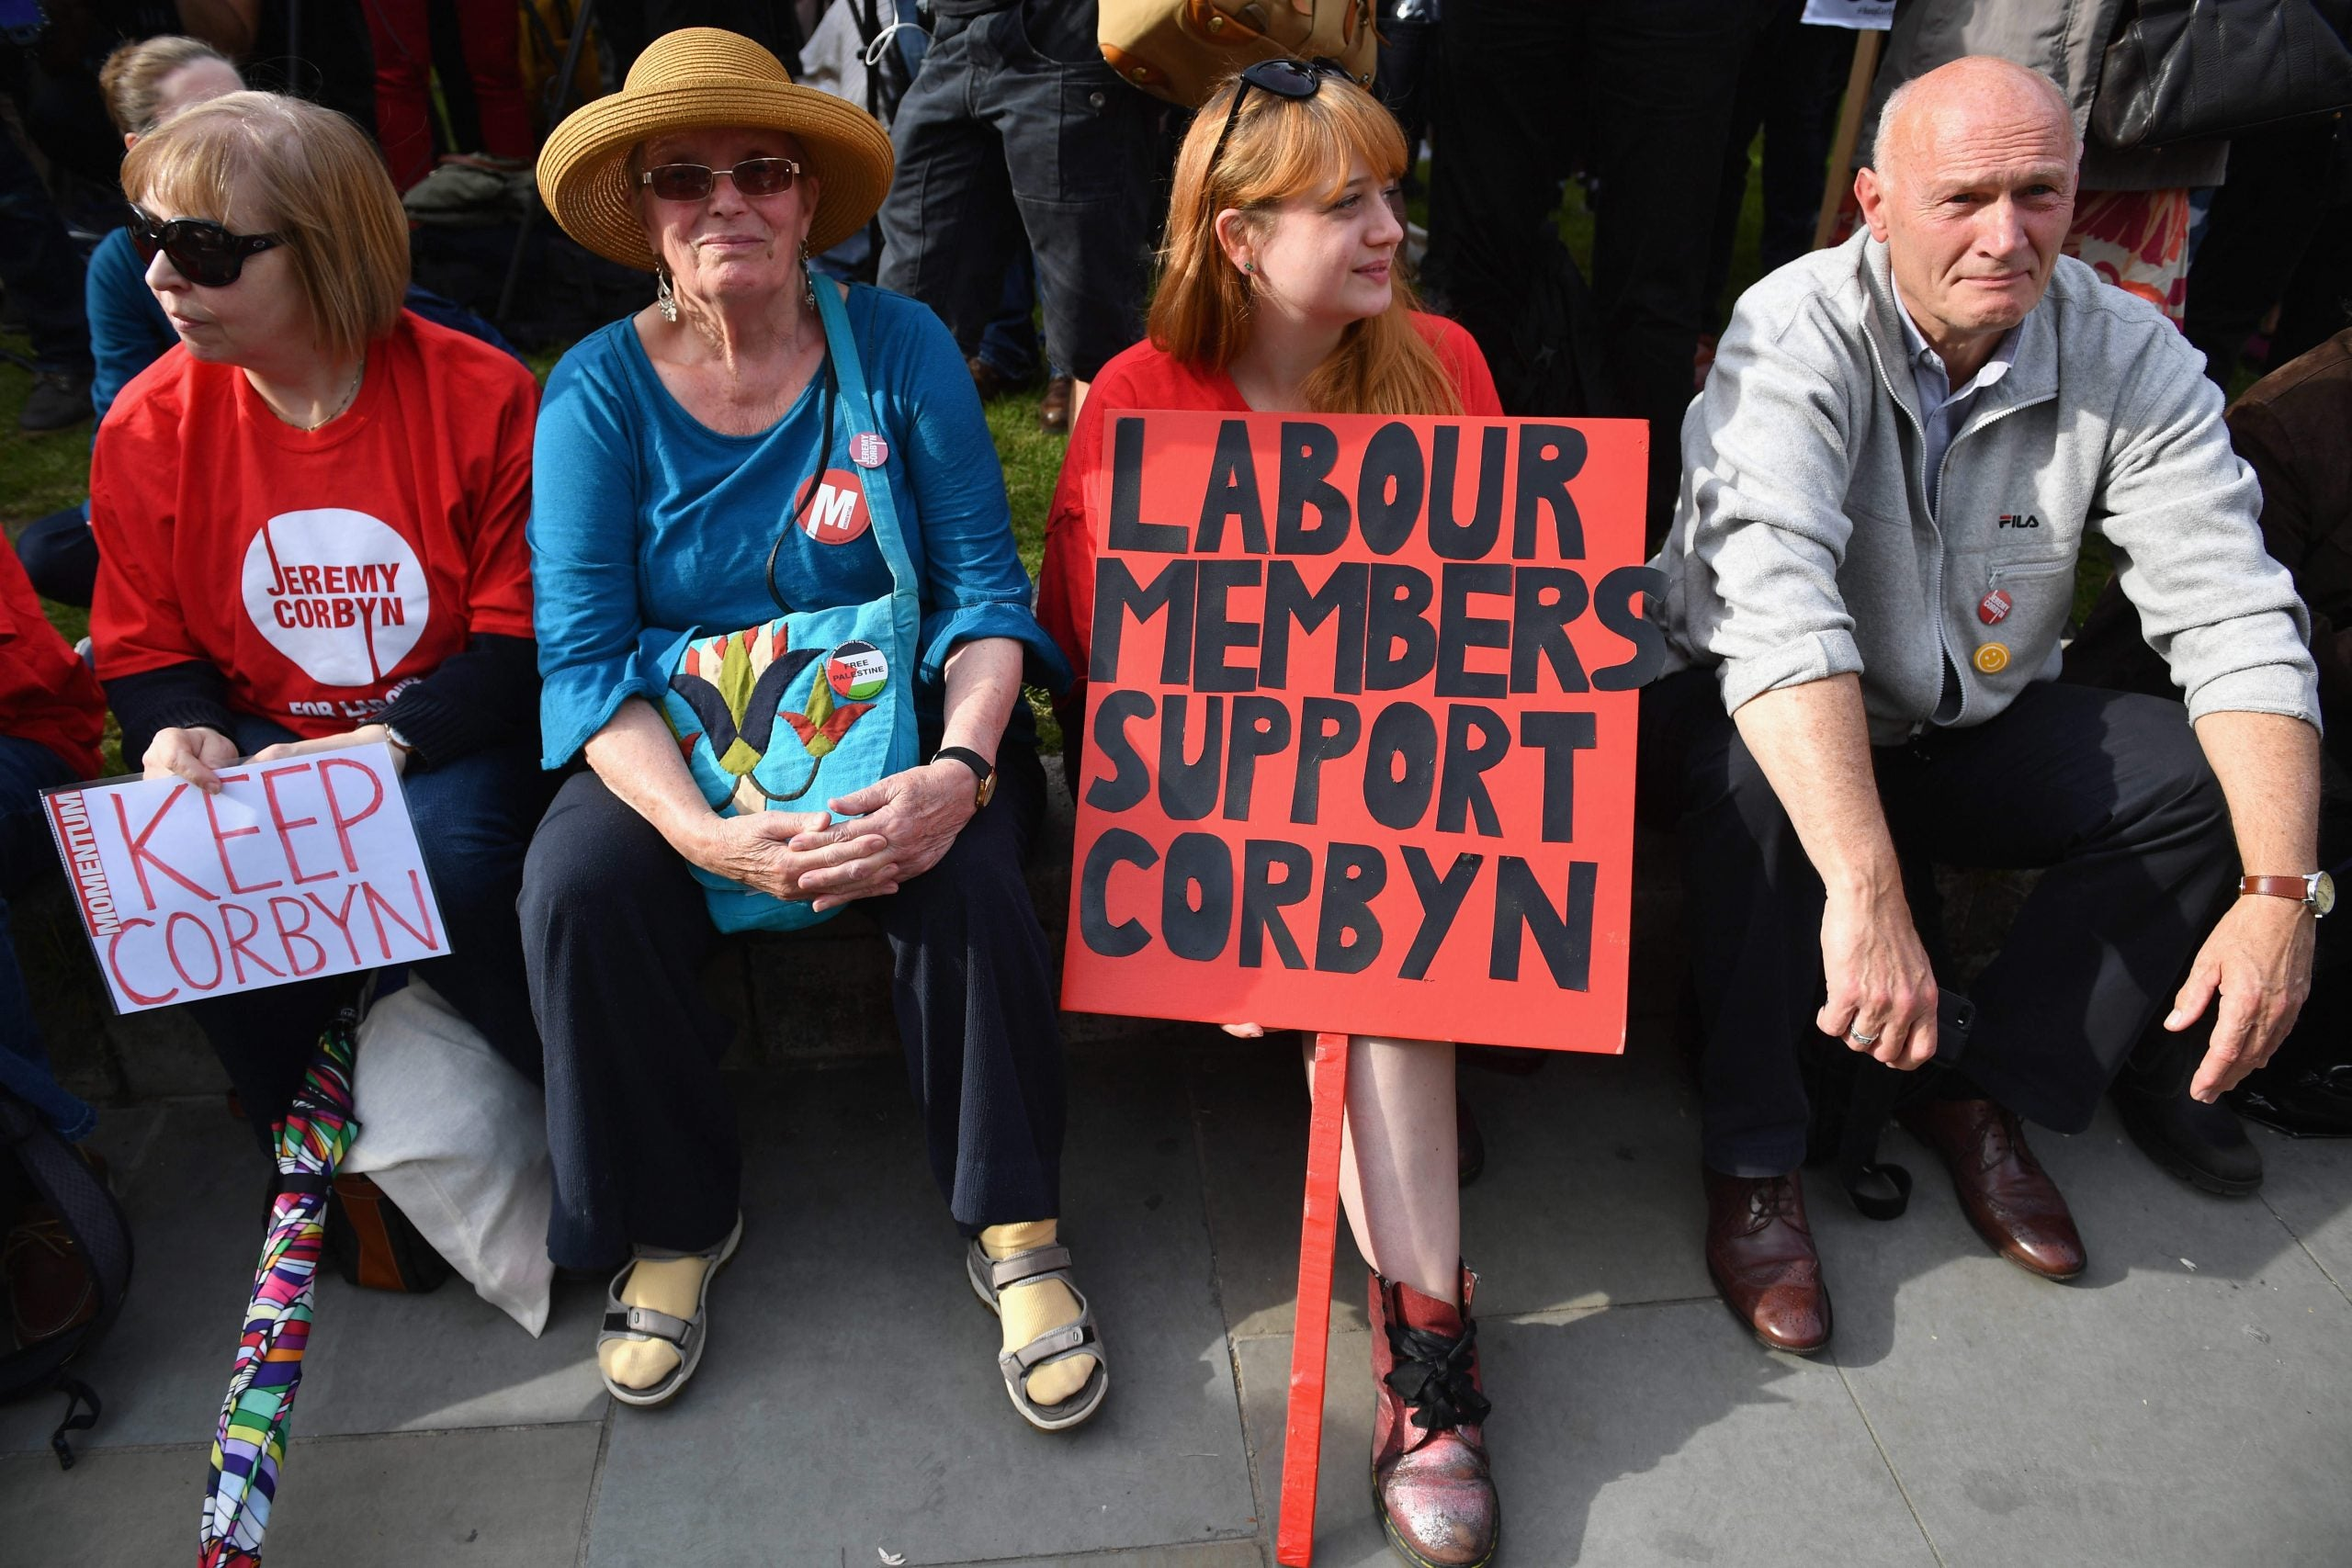 Middle-class university graduates will decide the future of the Labour Party